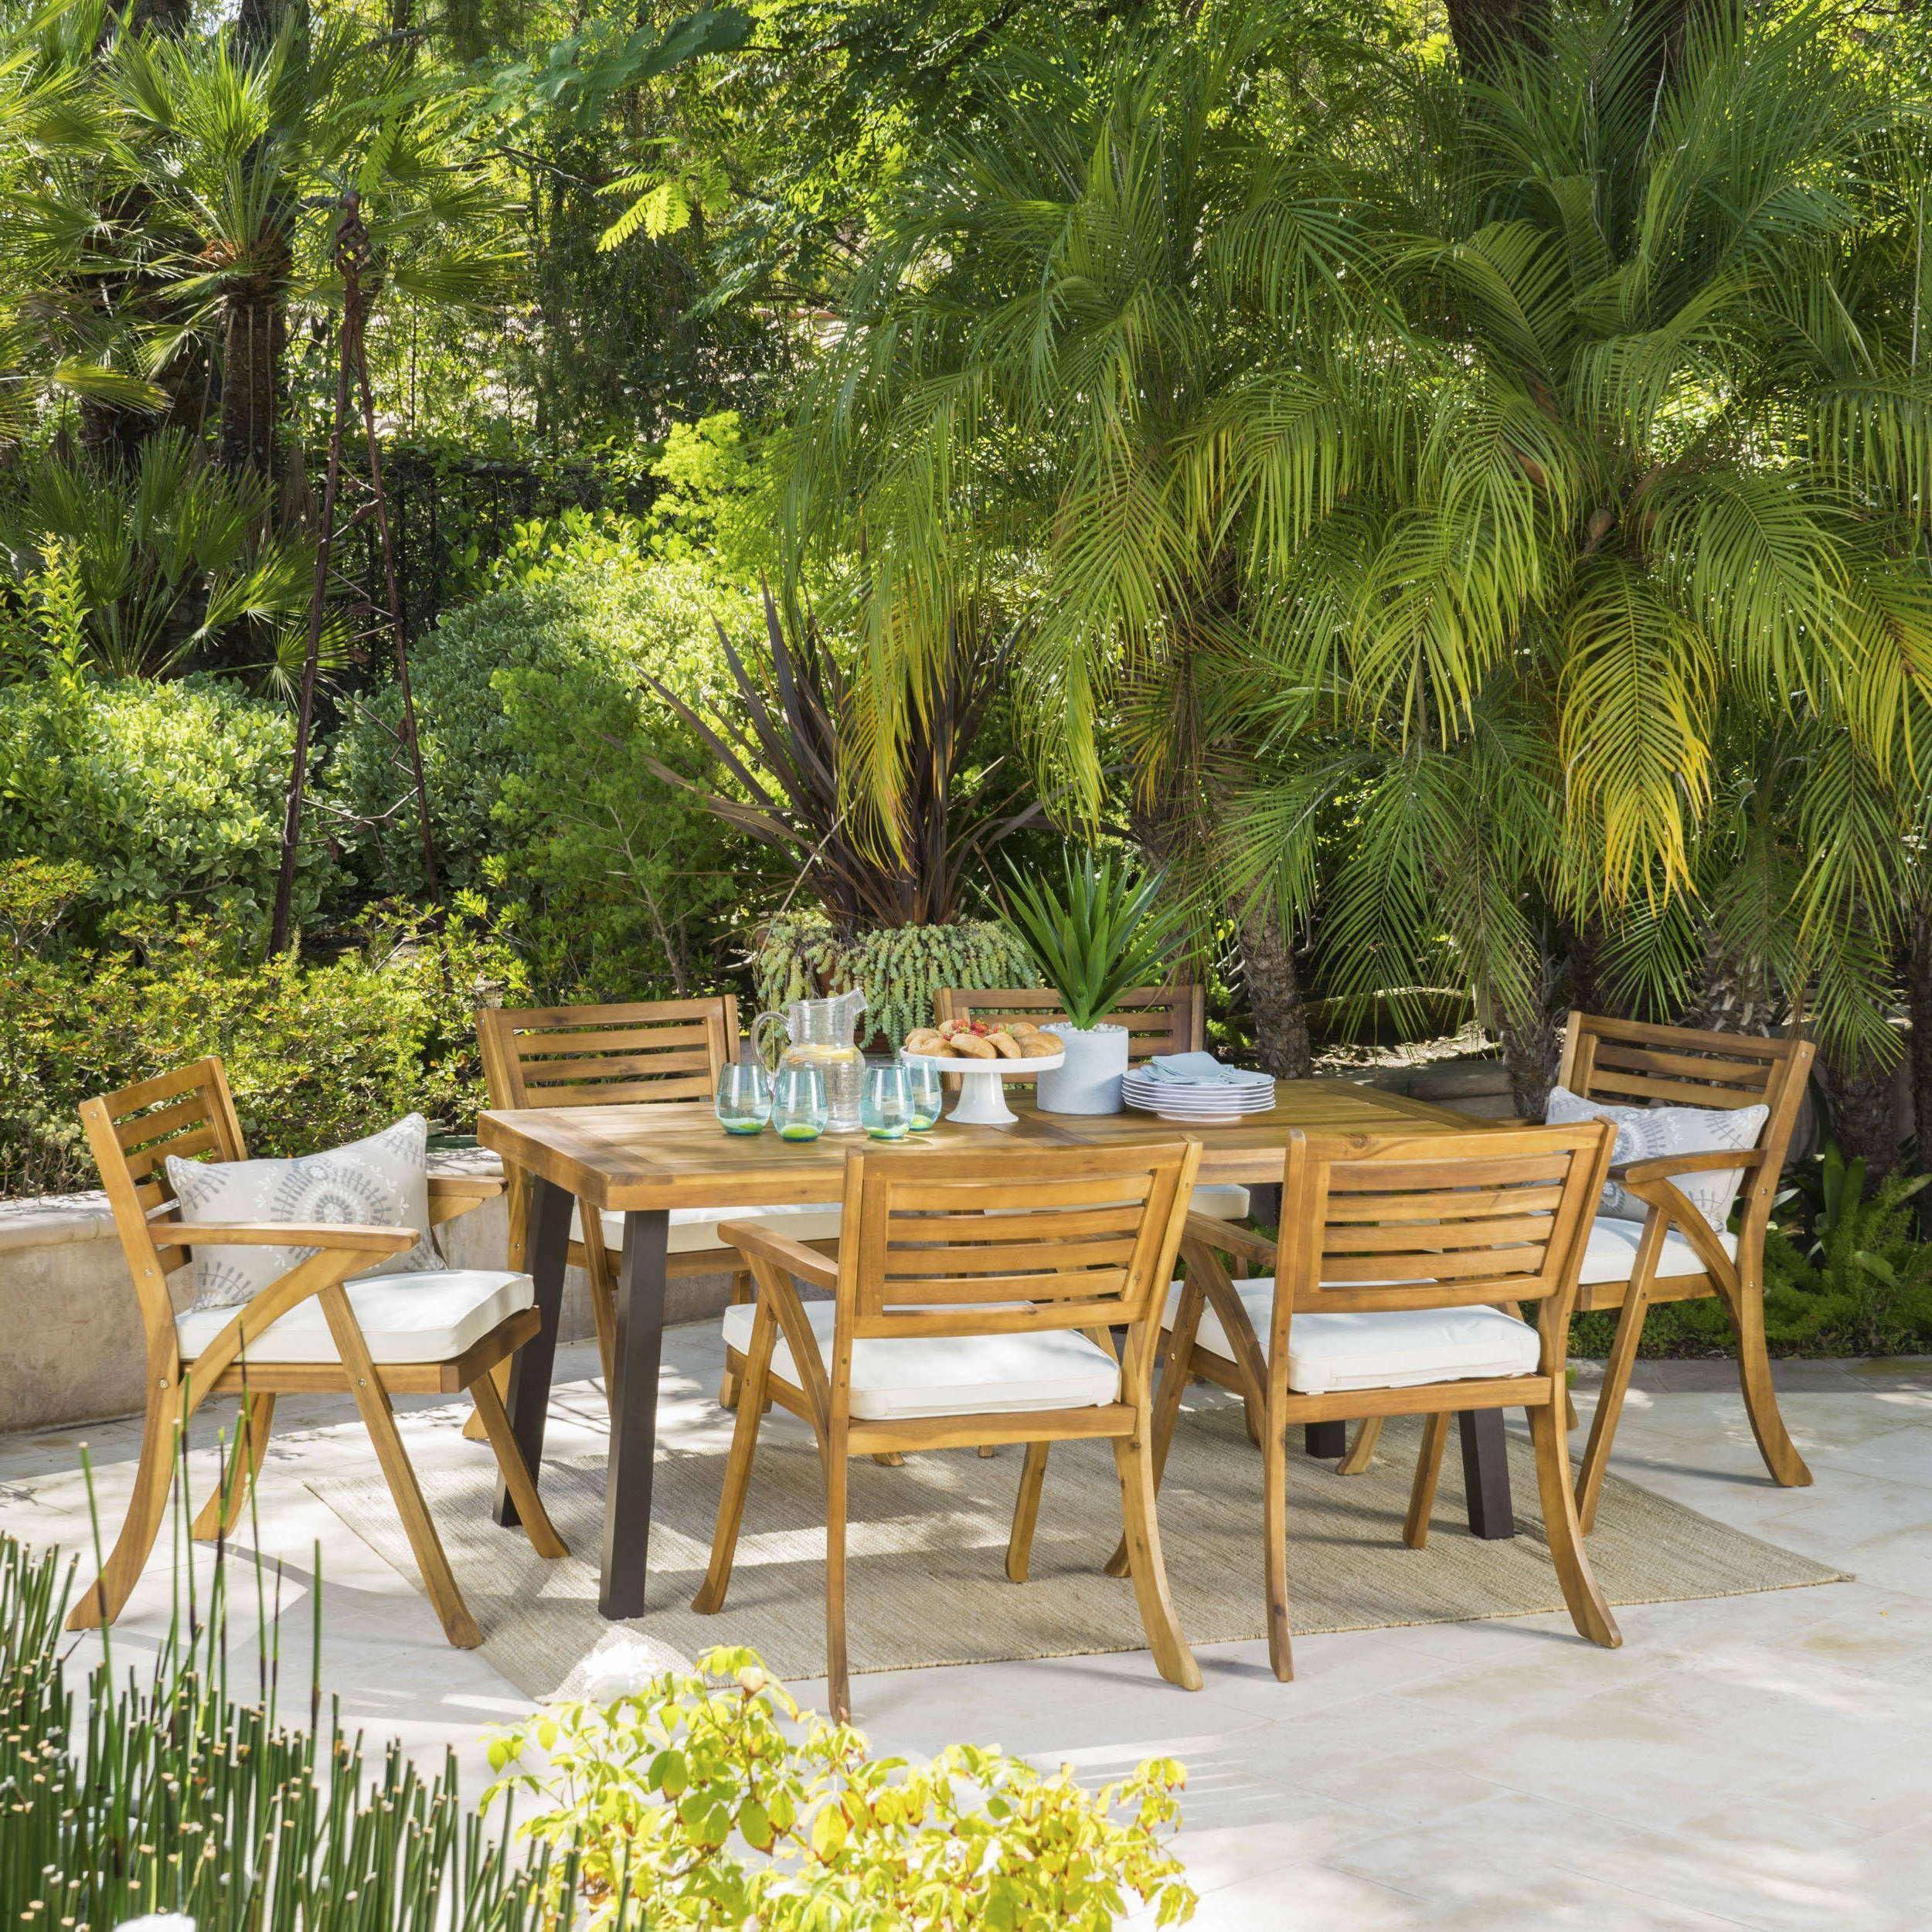 Trendy Jamilla Teak Patio Sofas With Cushion In Della Outdoor 7 Piece Rectangle Acacia Wood Dining Set With (View 25 of 25)